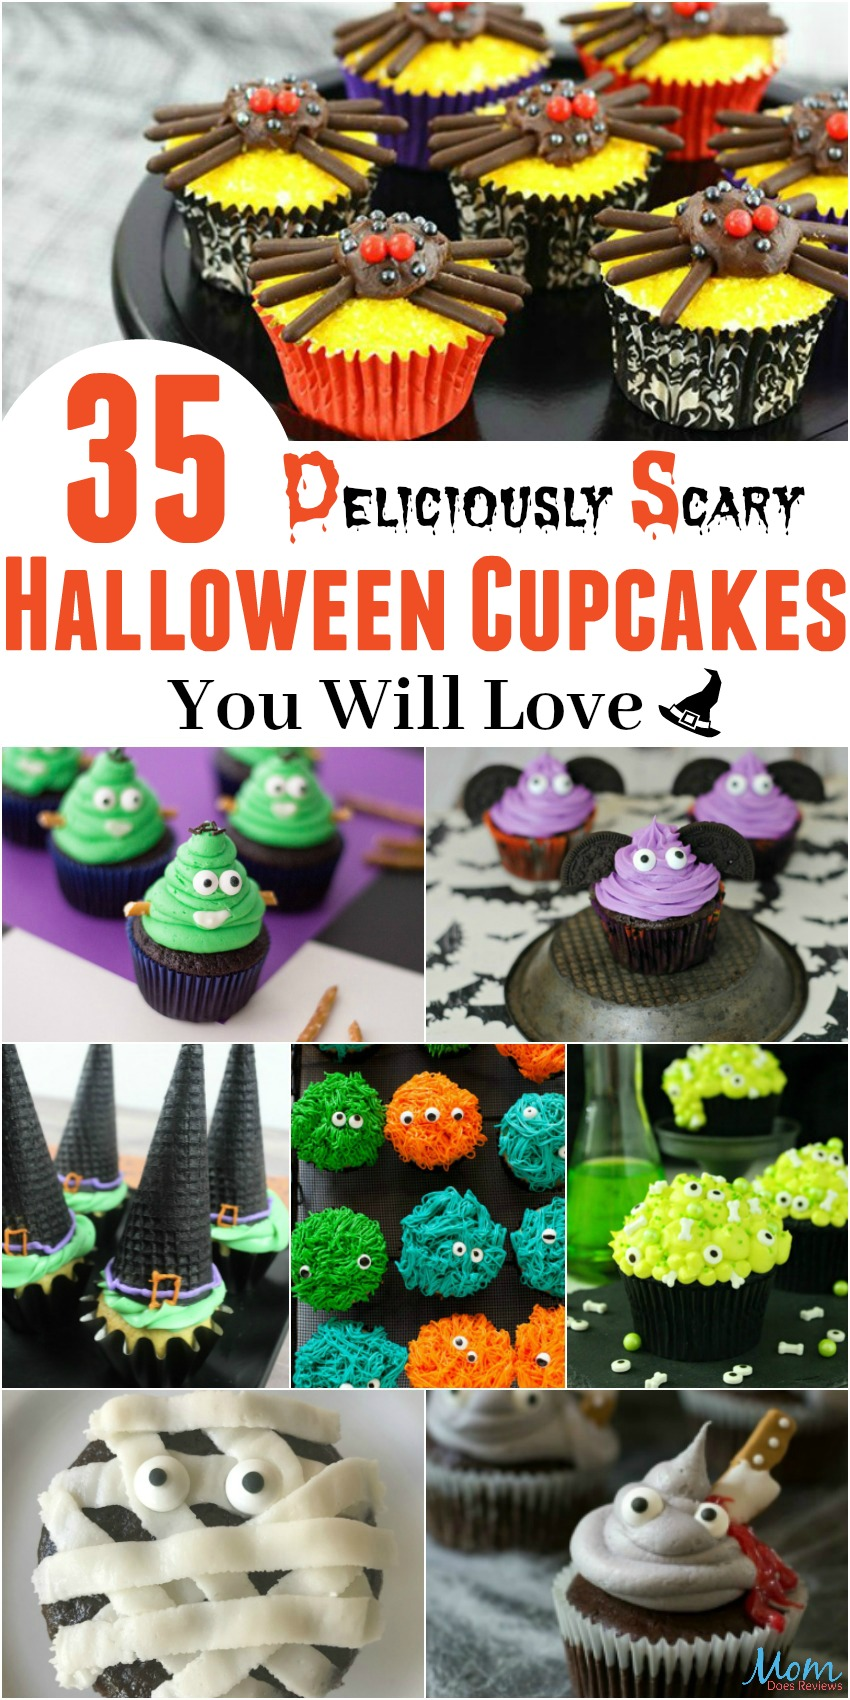 35 Deliciously Scary Halloween Cupcakes You Will Love